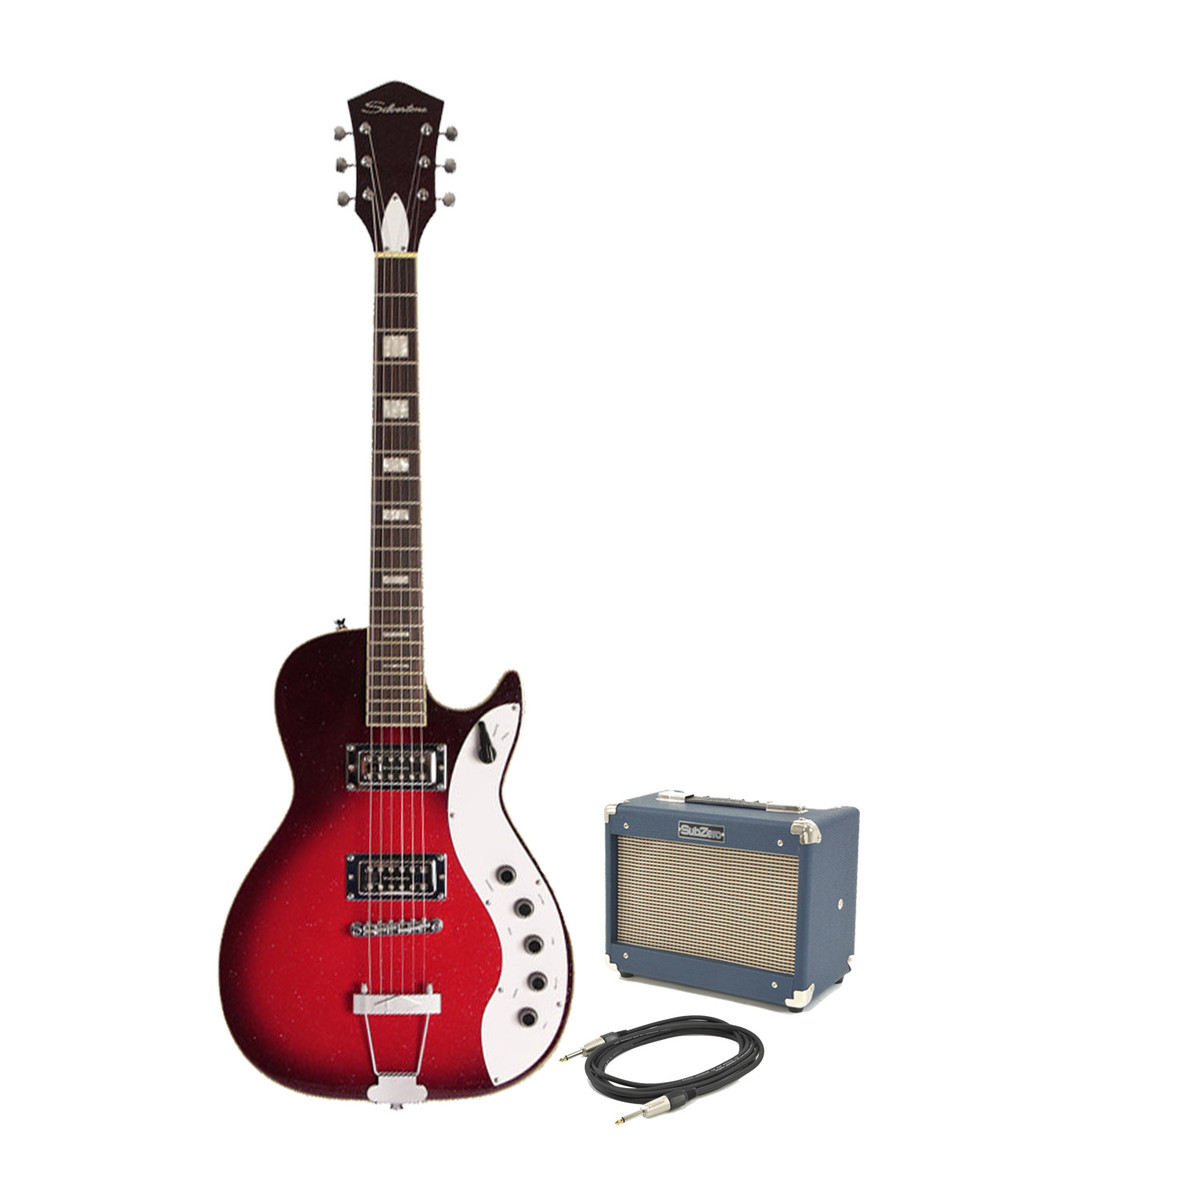 silvertone 1423 electric guitar subzero tube 5 pack red burst at gear4music. Black Bedroom Furniture Sets. Home Design Ideas